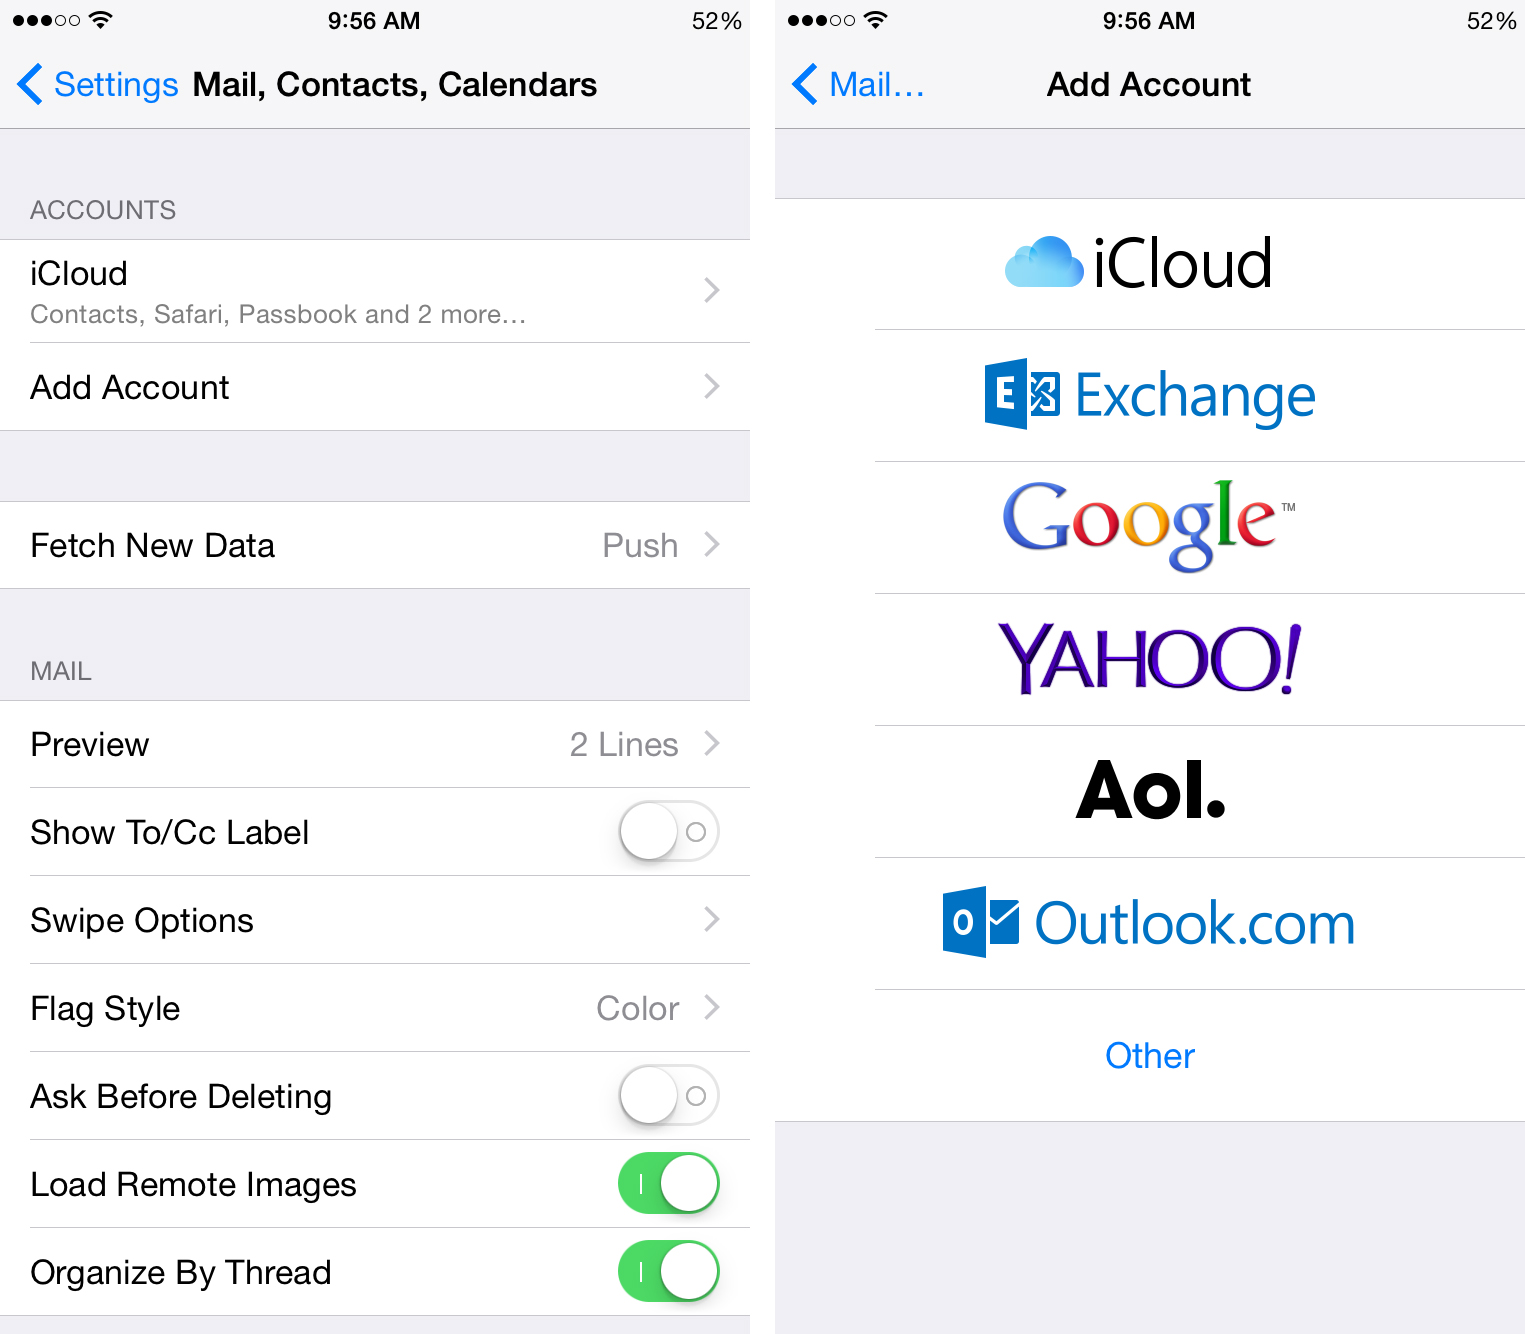 How to Sync Email and Calendar to iPhone